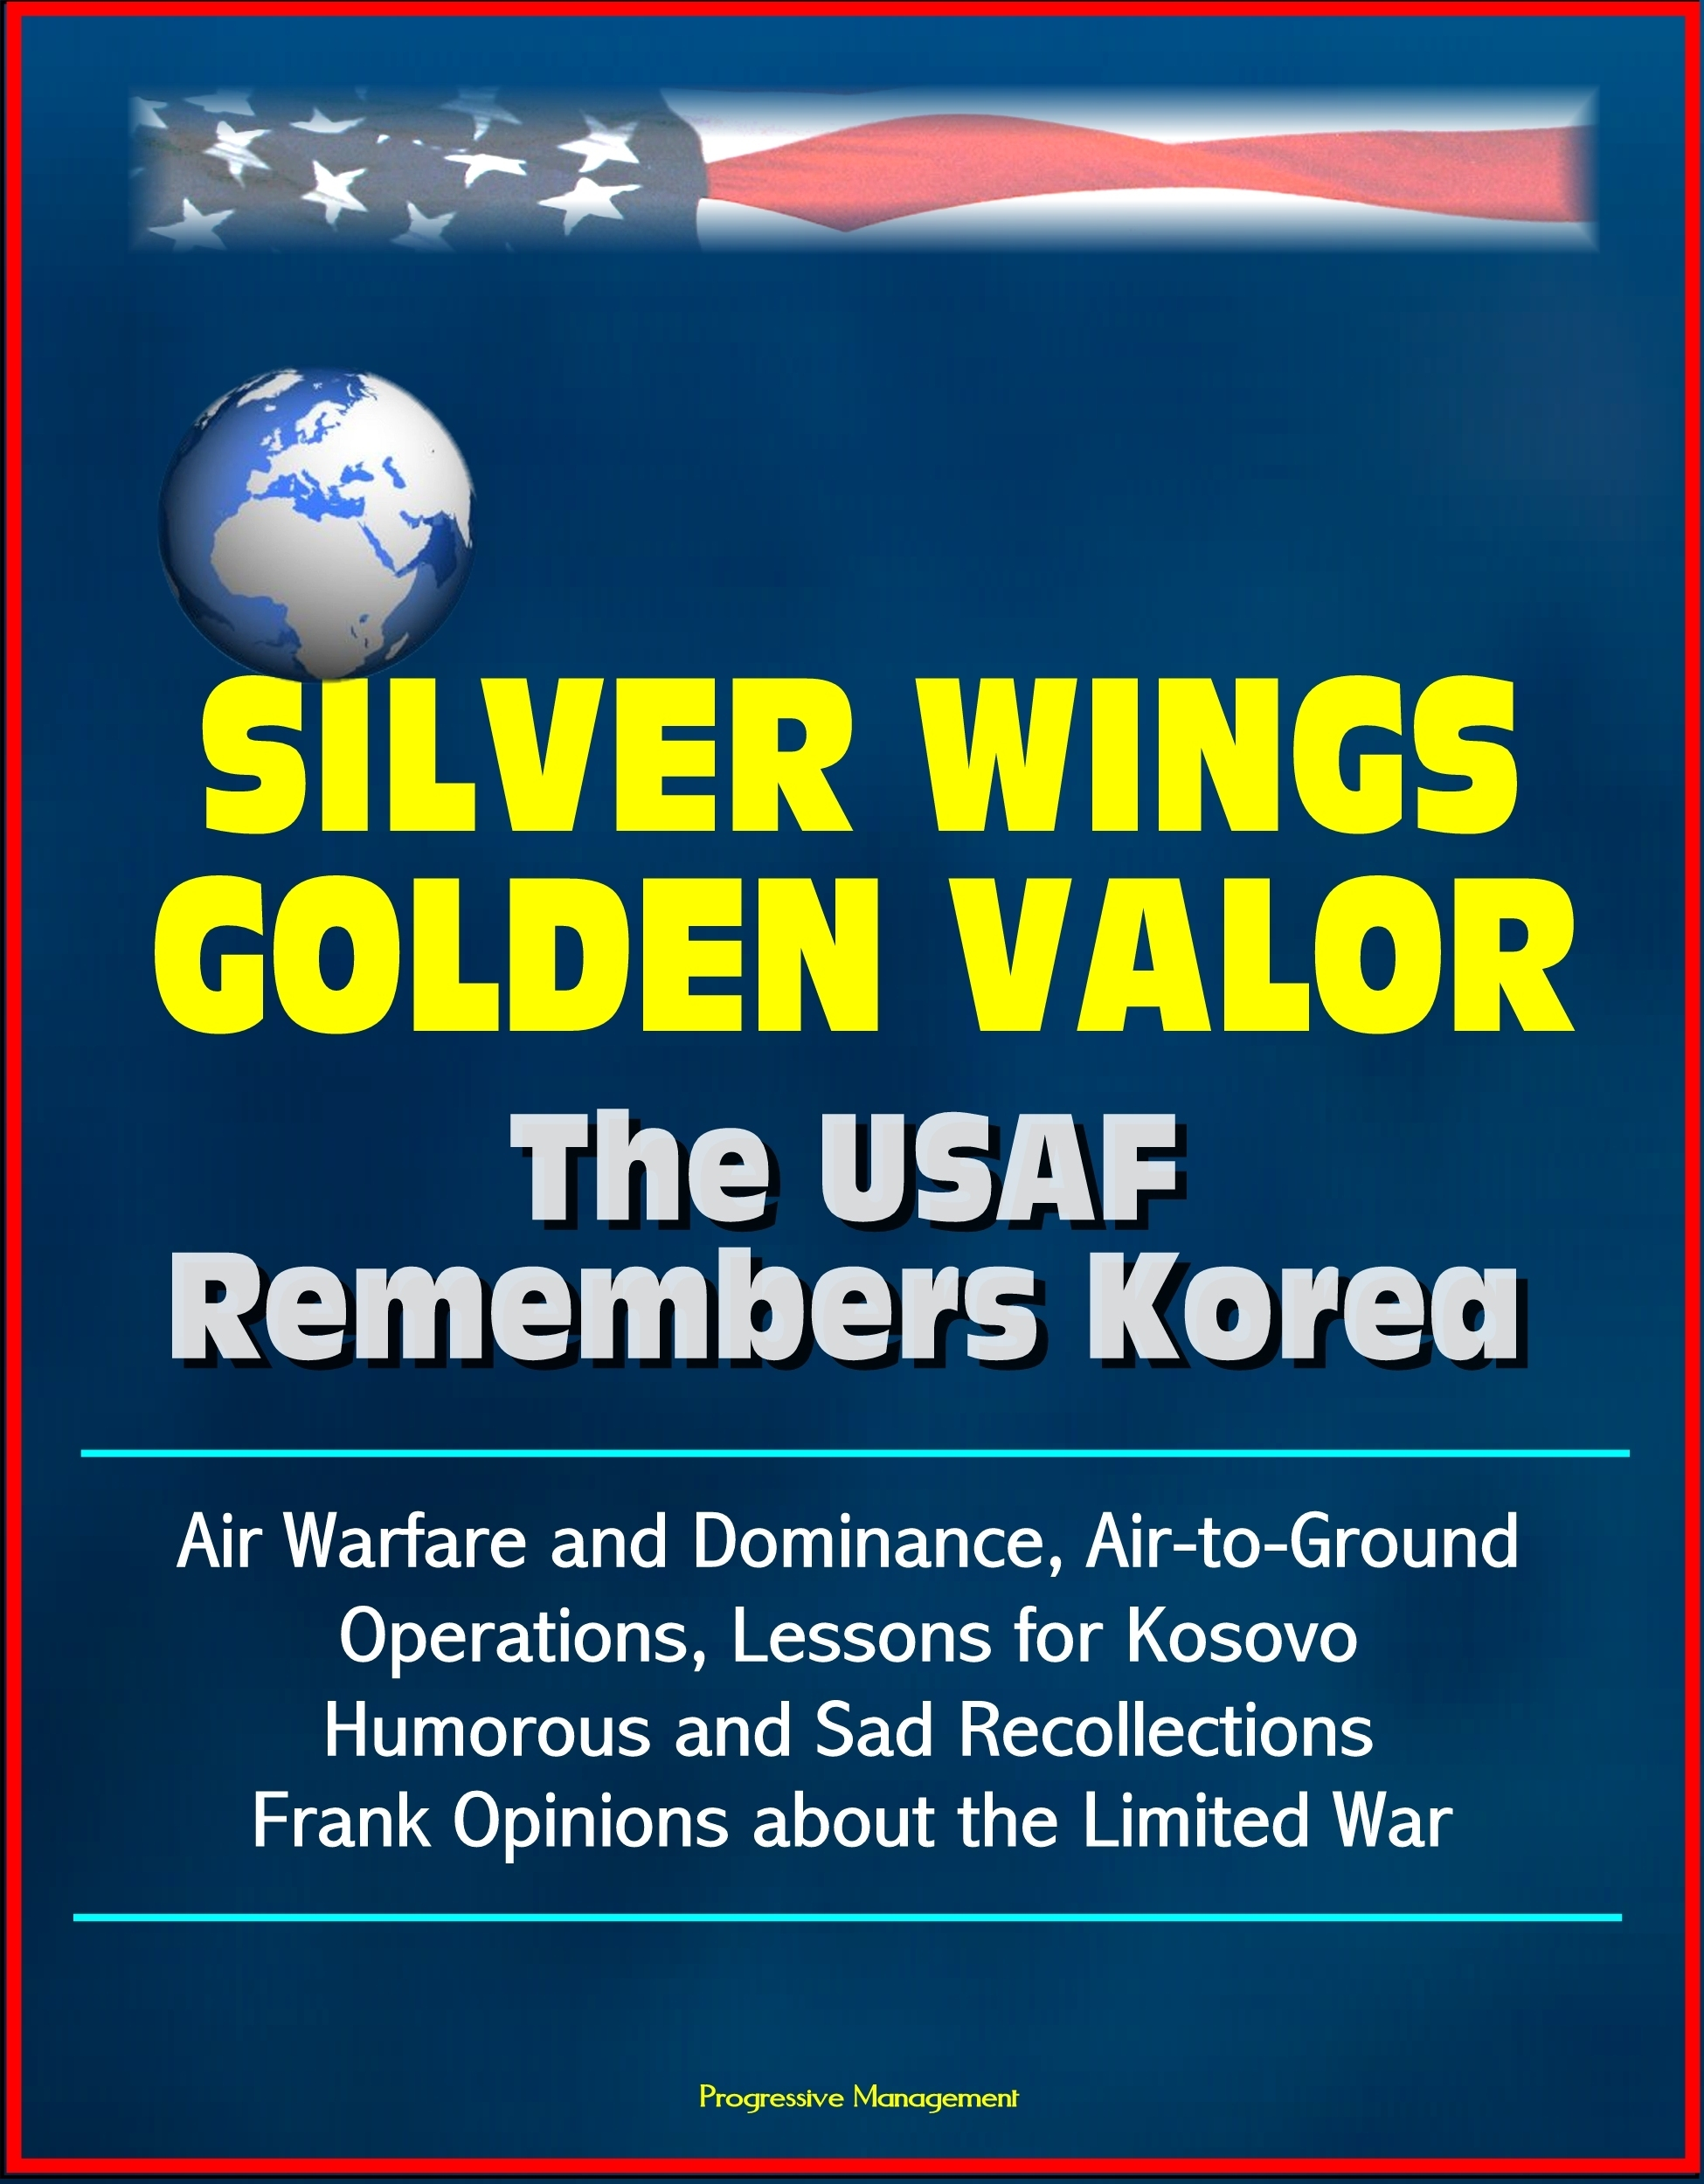 Silver Wings, Golden Valor: The USAF Remembers Korea - Air Warfare and Dominance, Air-to-Ground Operations, Lessons for Kosovo, Humorous and Sad Recollections, Frank Opinions about the Limited War Progressive Management